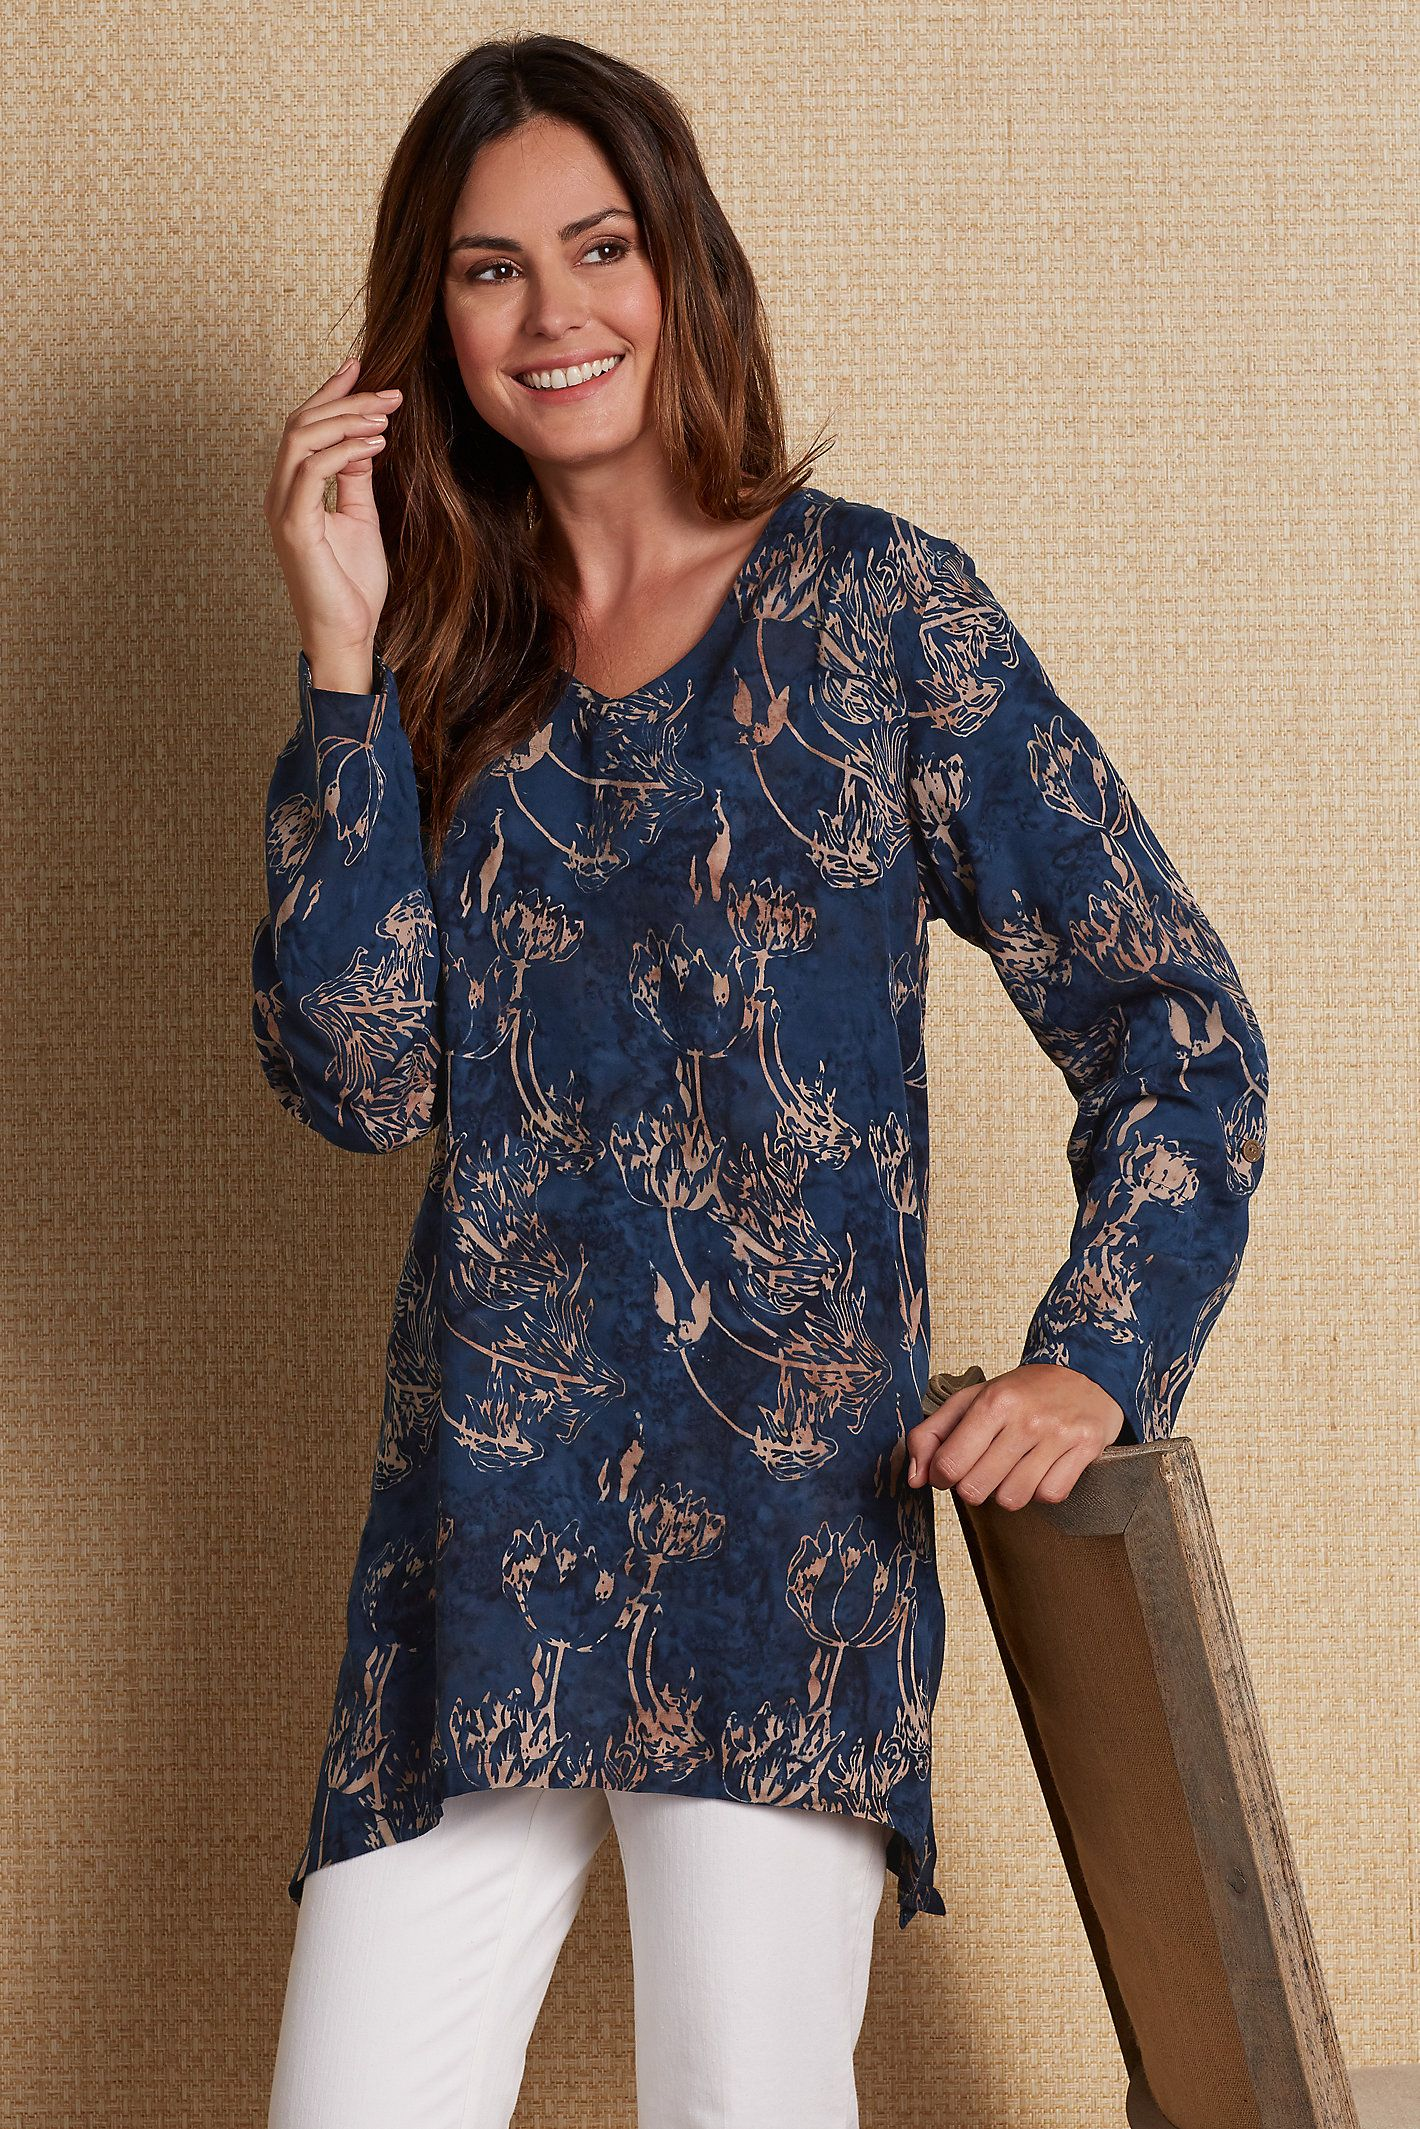 Exotic flowers seem to gently sway in this artful batik print Grace Tunic top of soft and drapey rayon, fashioned with a contrast border print.